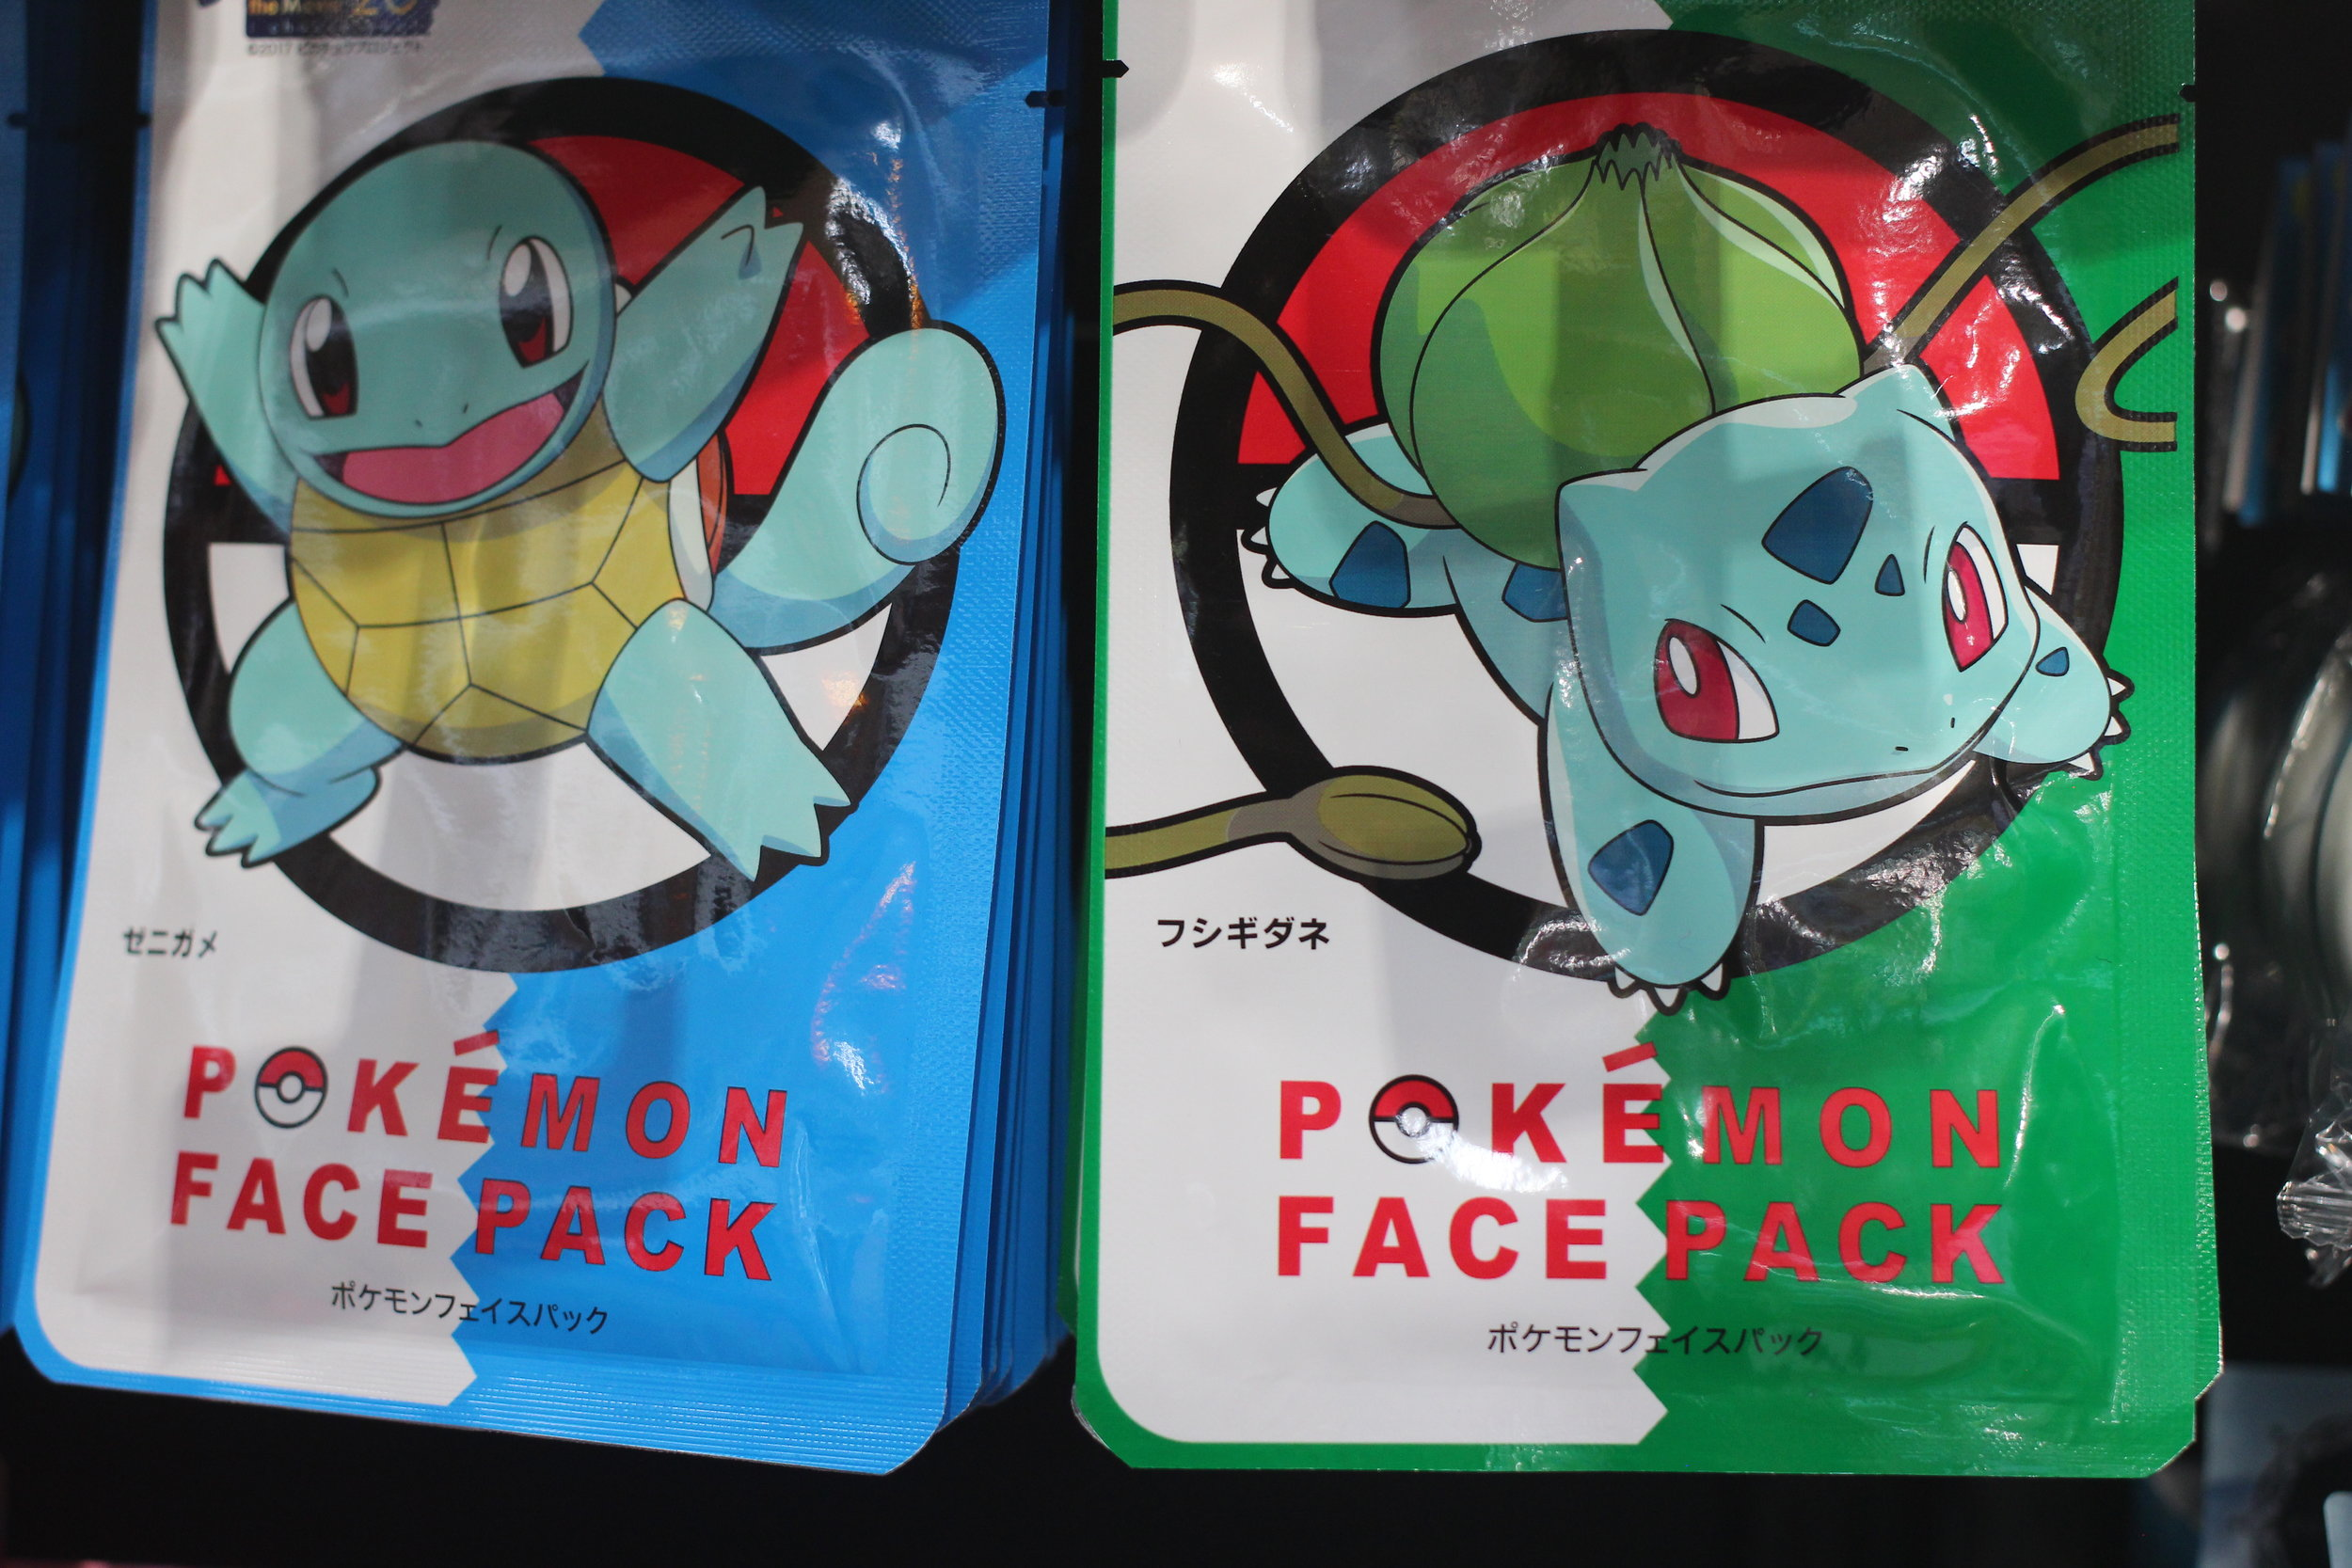 Pokemon makes me want to buy a facial kid. Obviously.